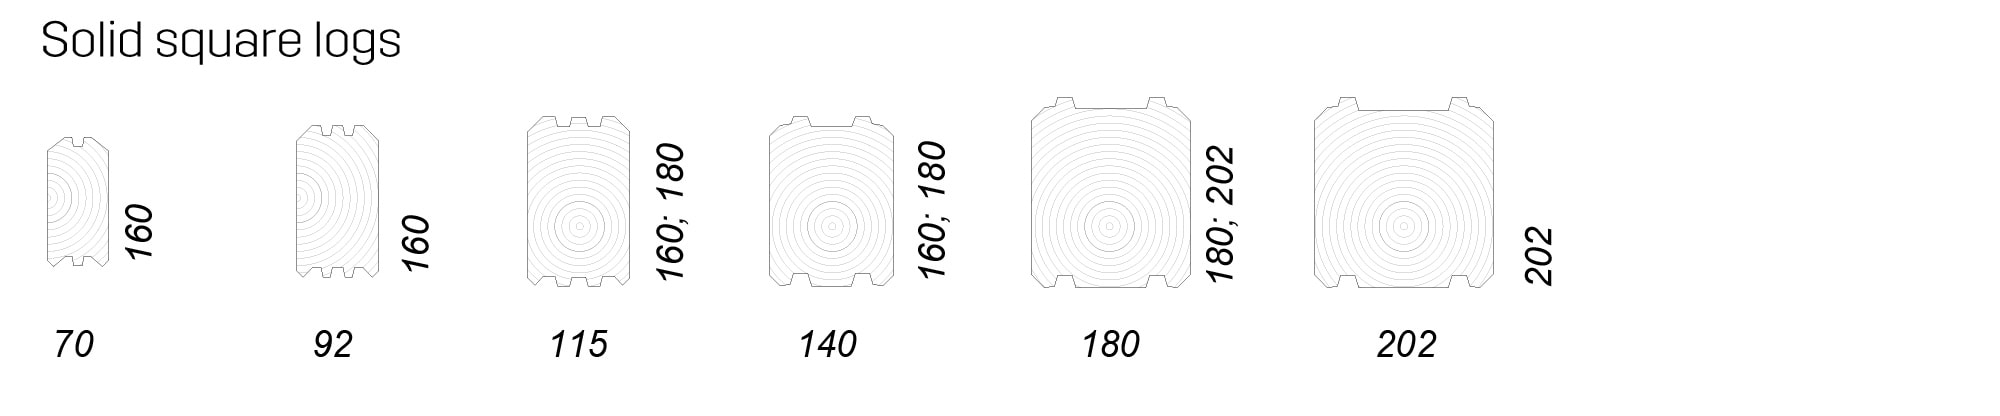 Solid square logs